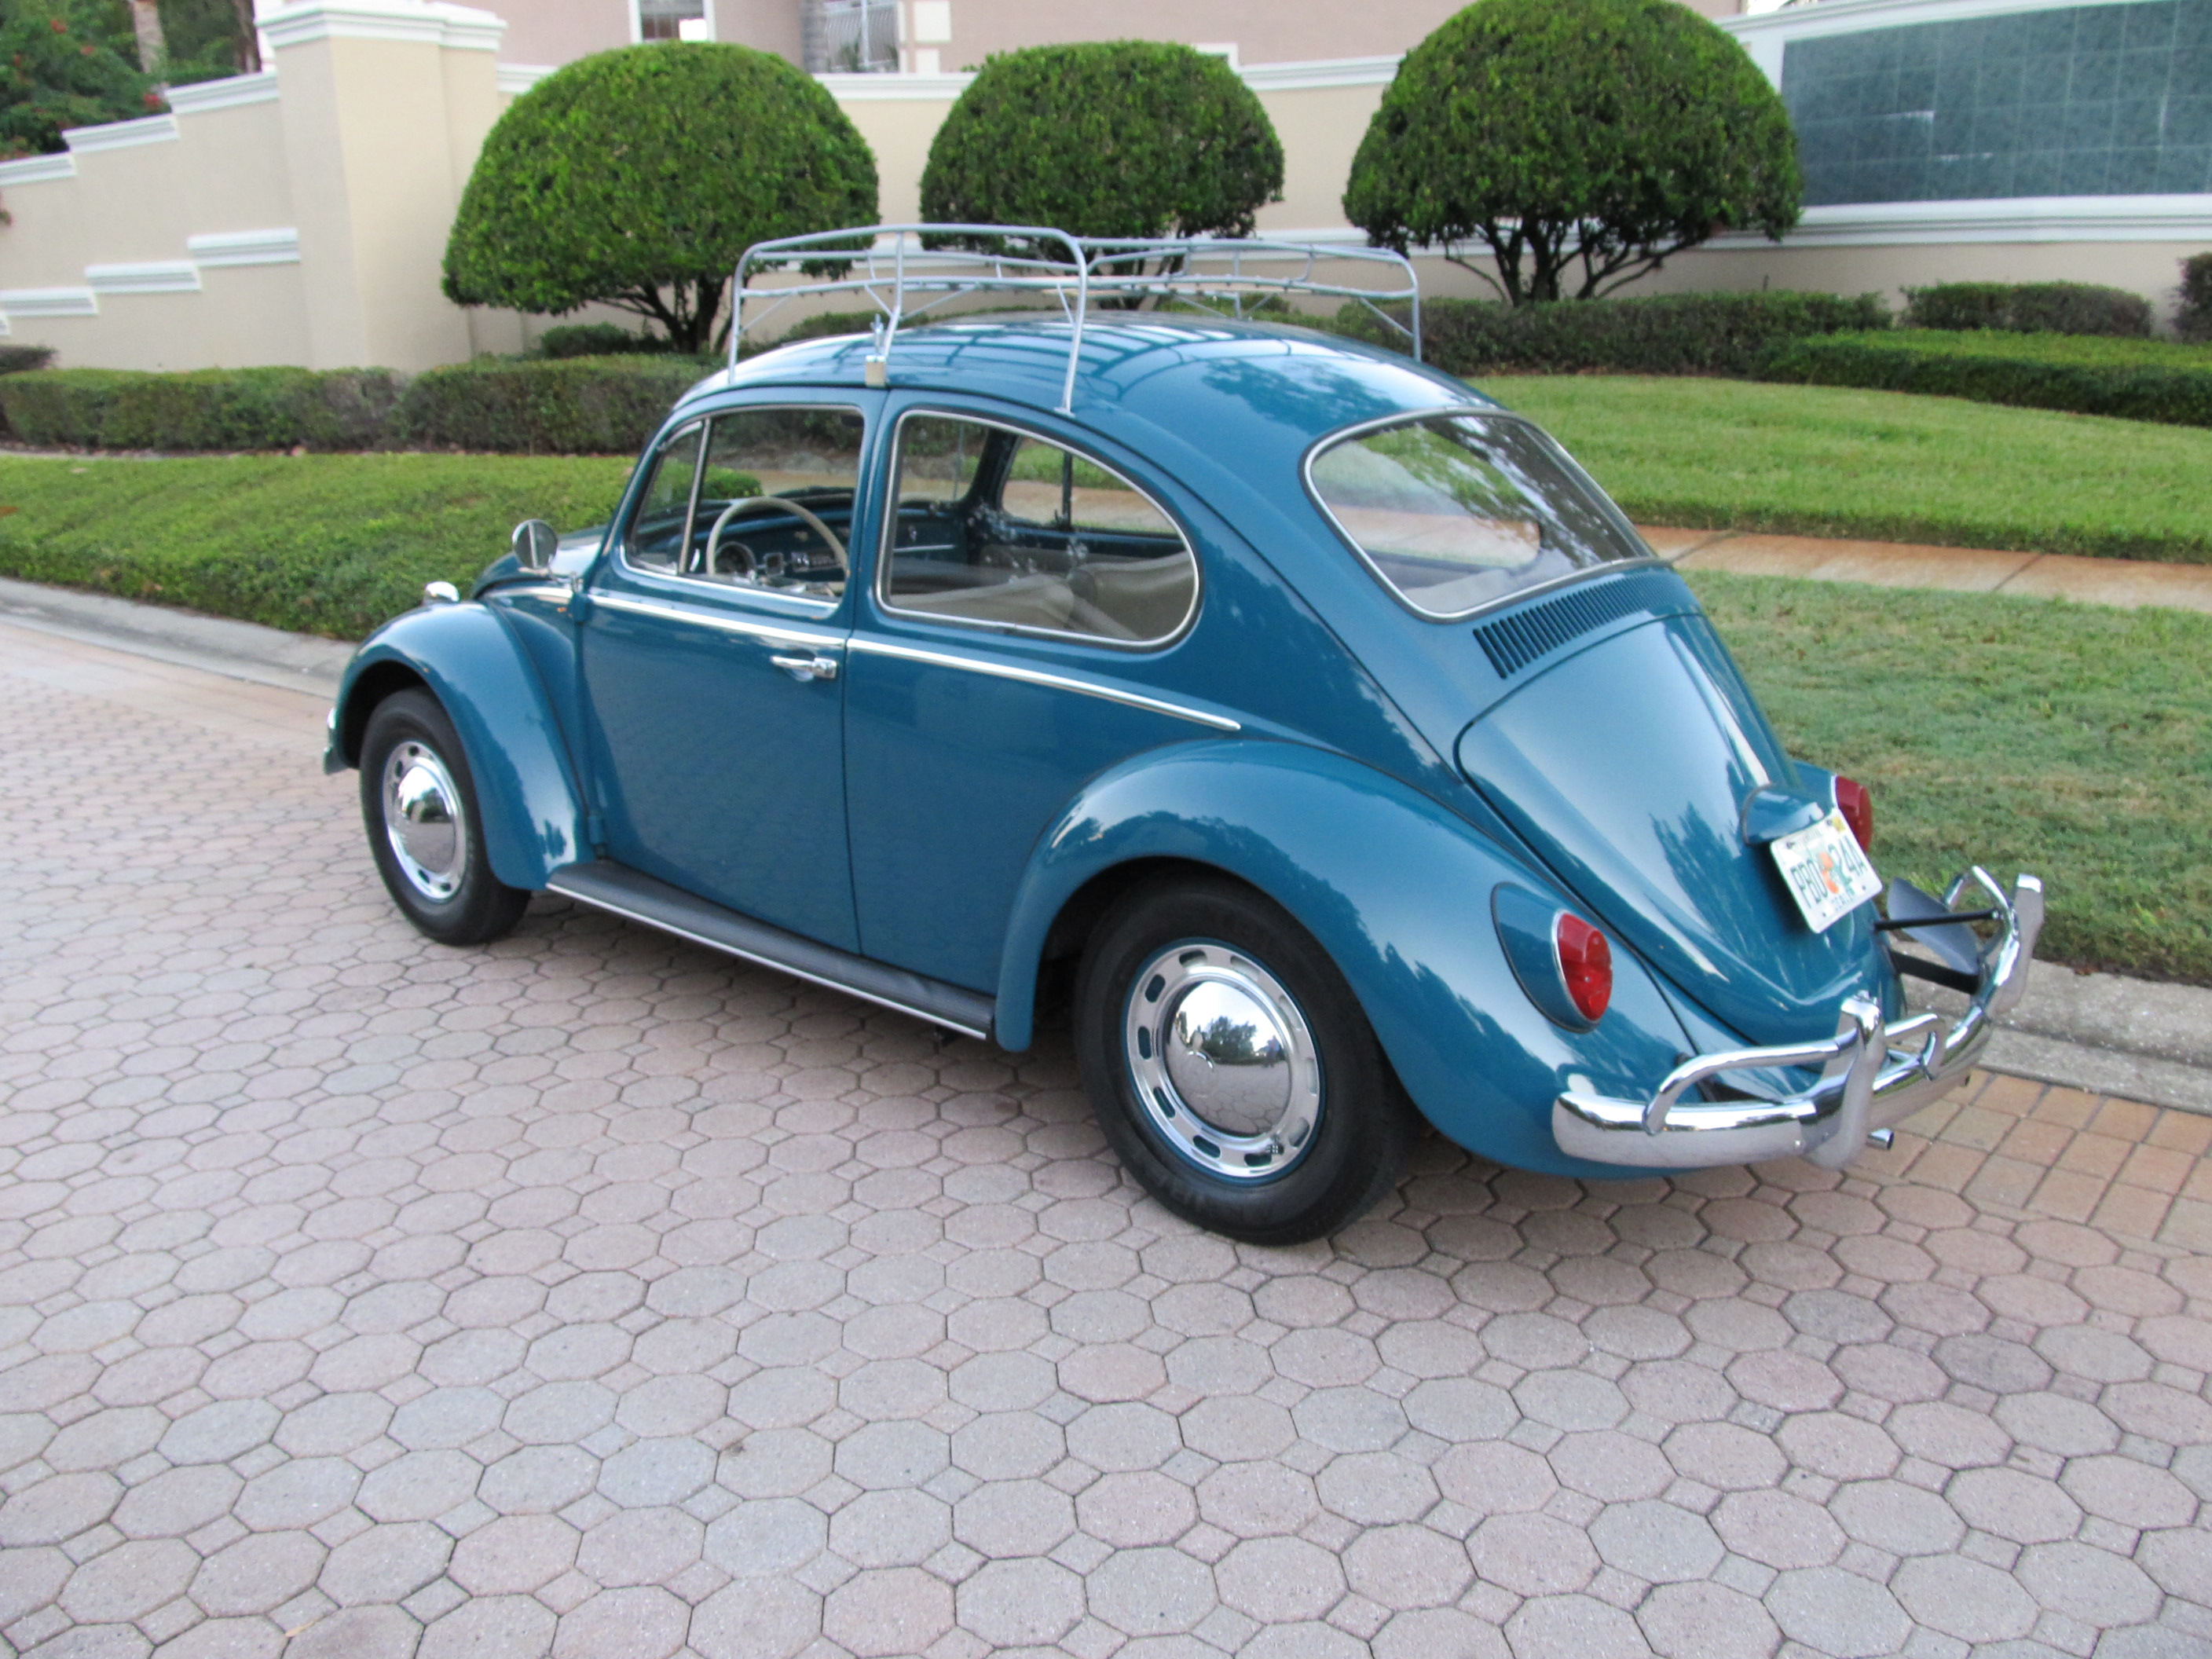 1965 Volkswagen Beetle U2013 Sunroof Model  SOLD!